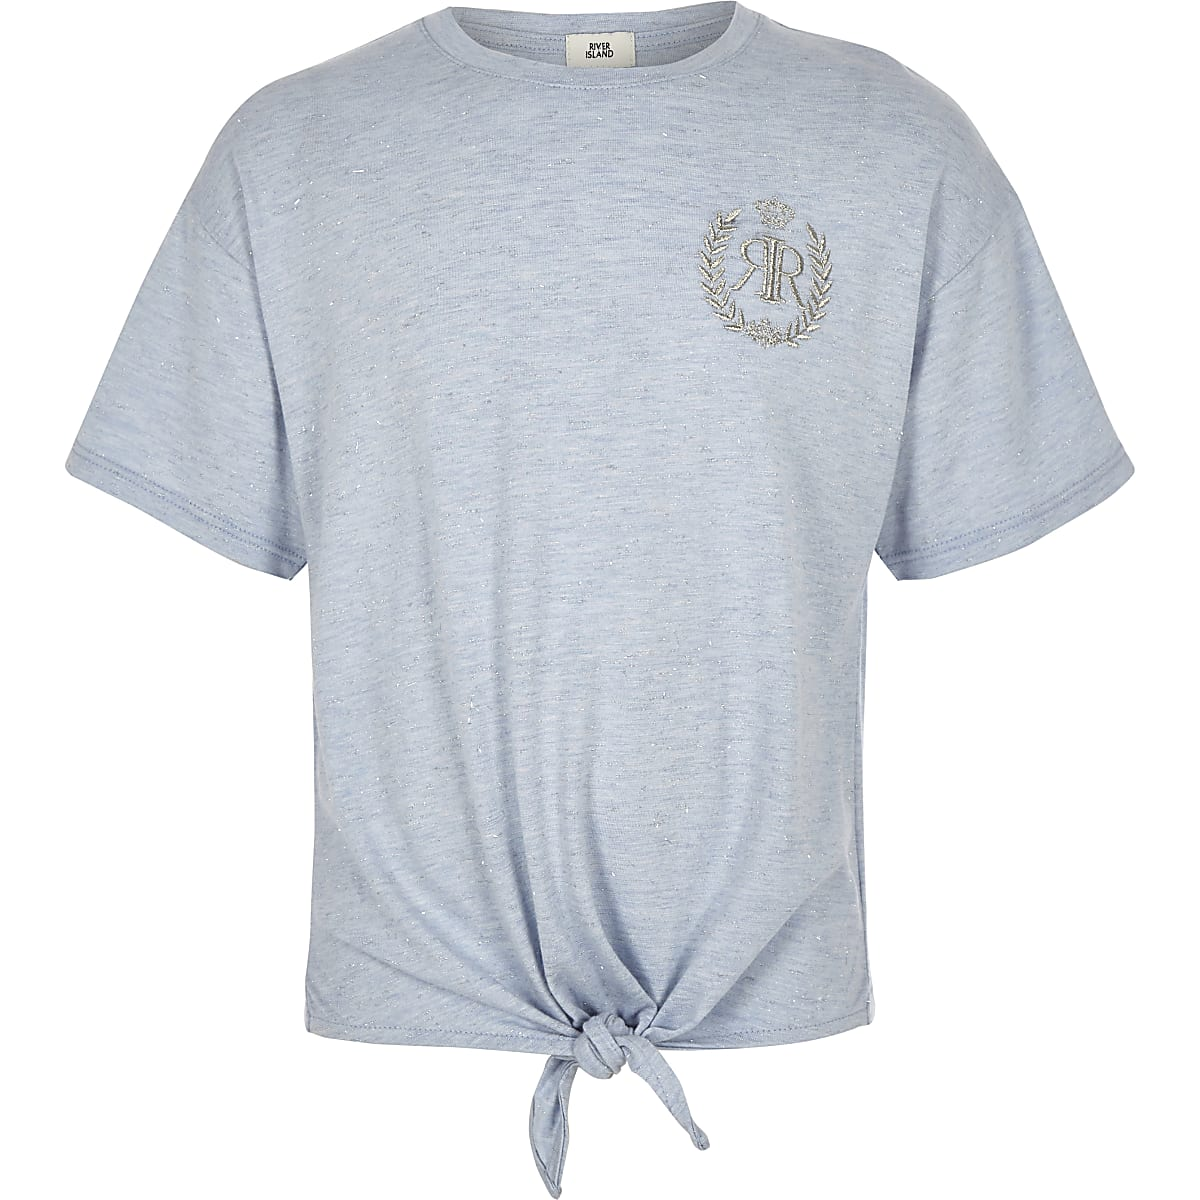 Girls blue RI tie front T-shirt